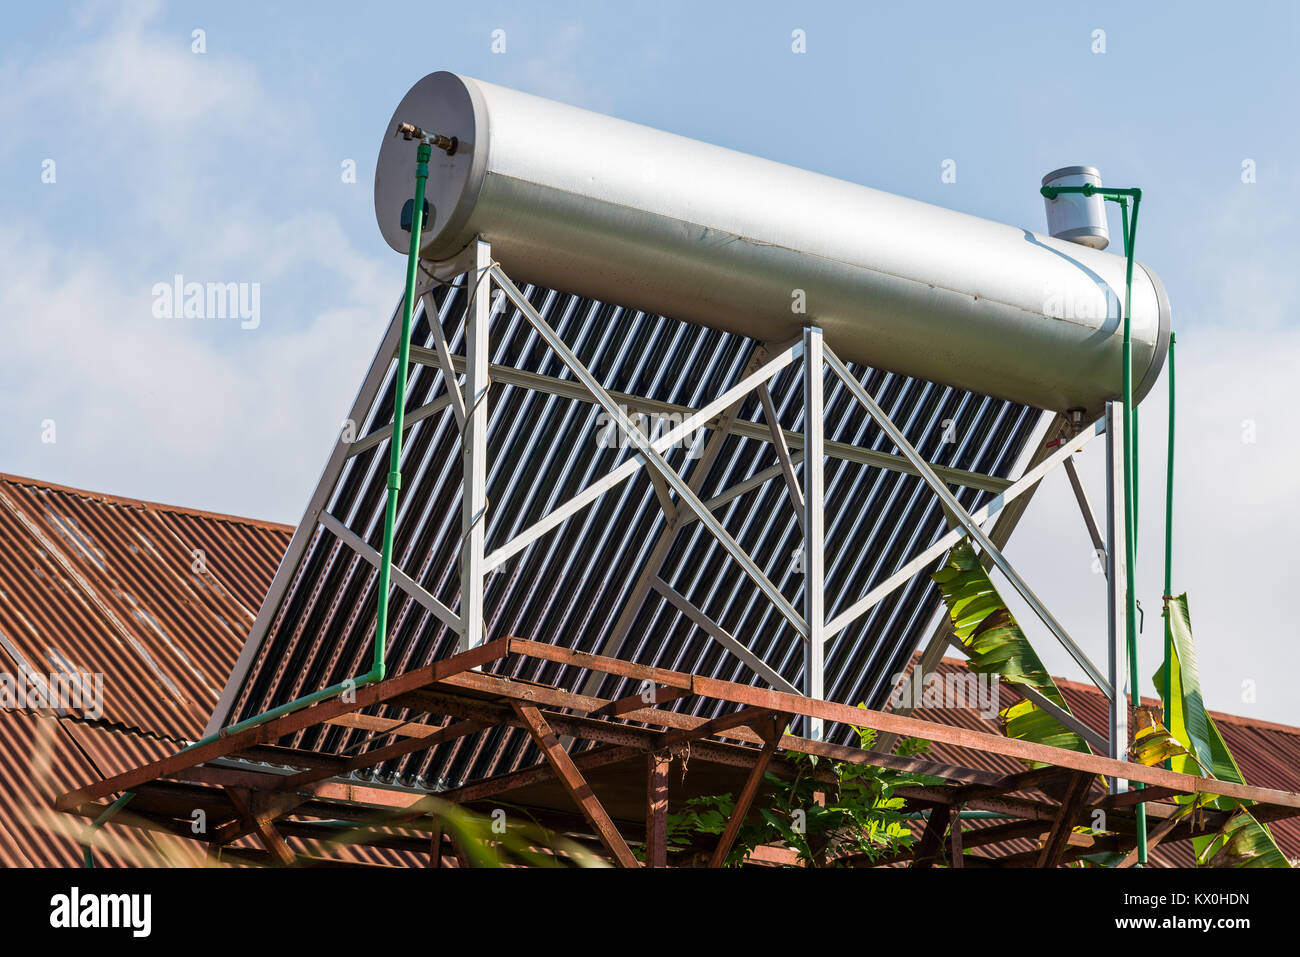 A roof-top solar powered water heater. Madagascar, Africa. - Stock Image